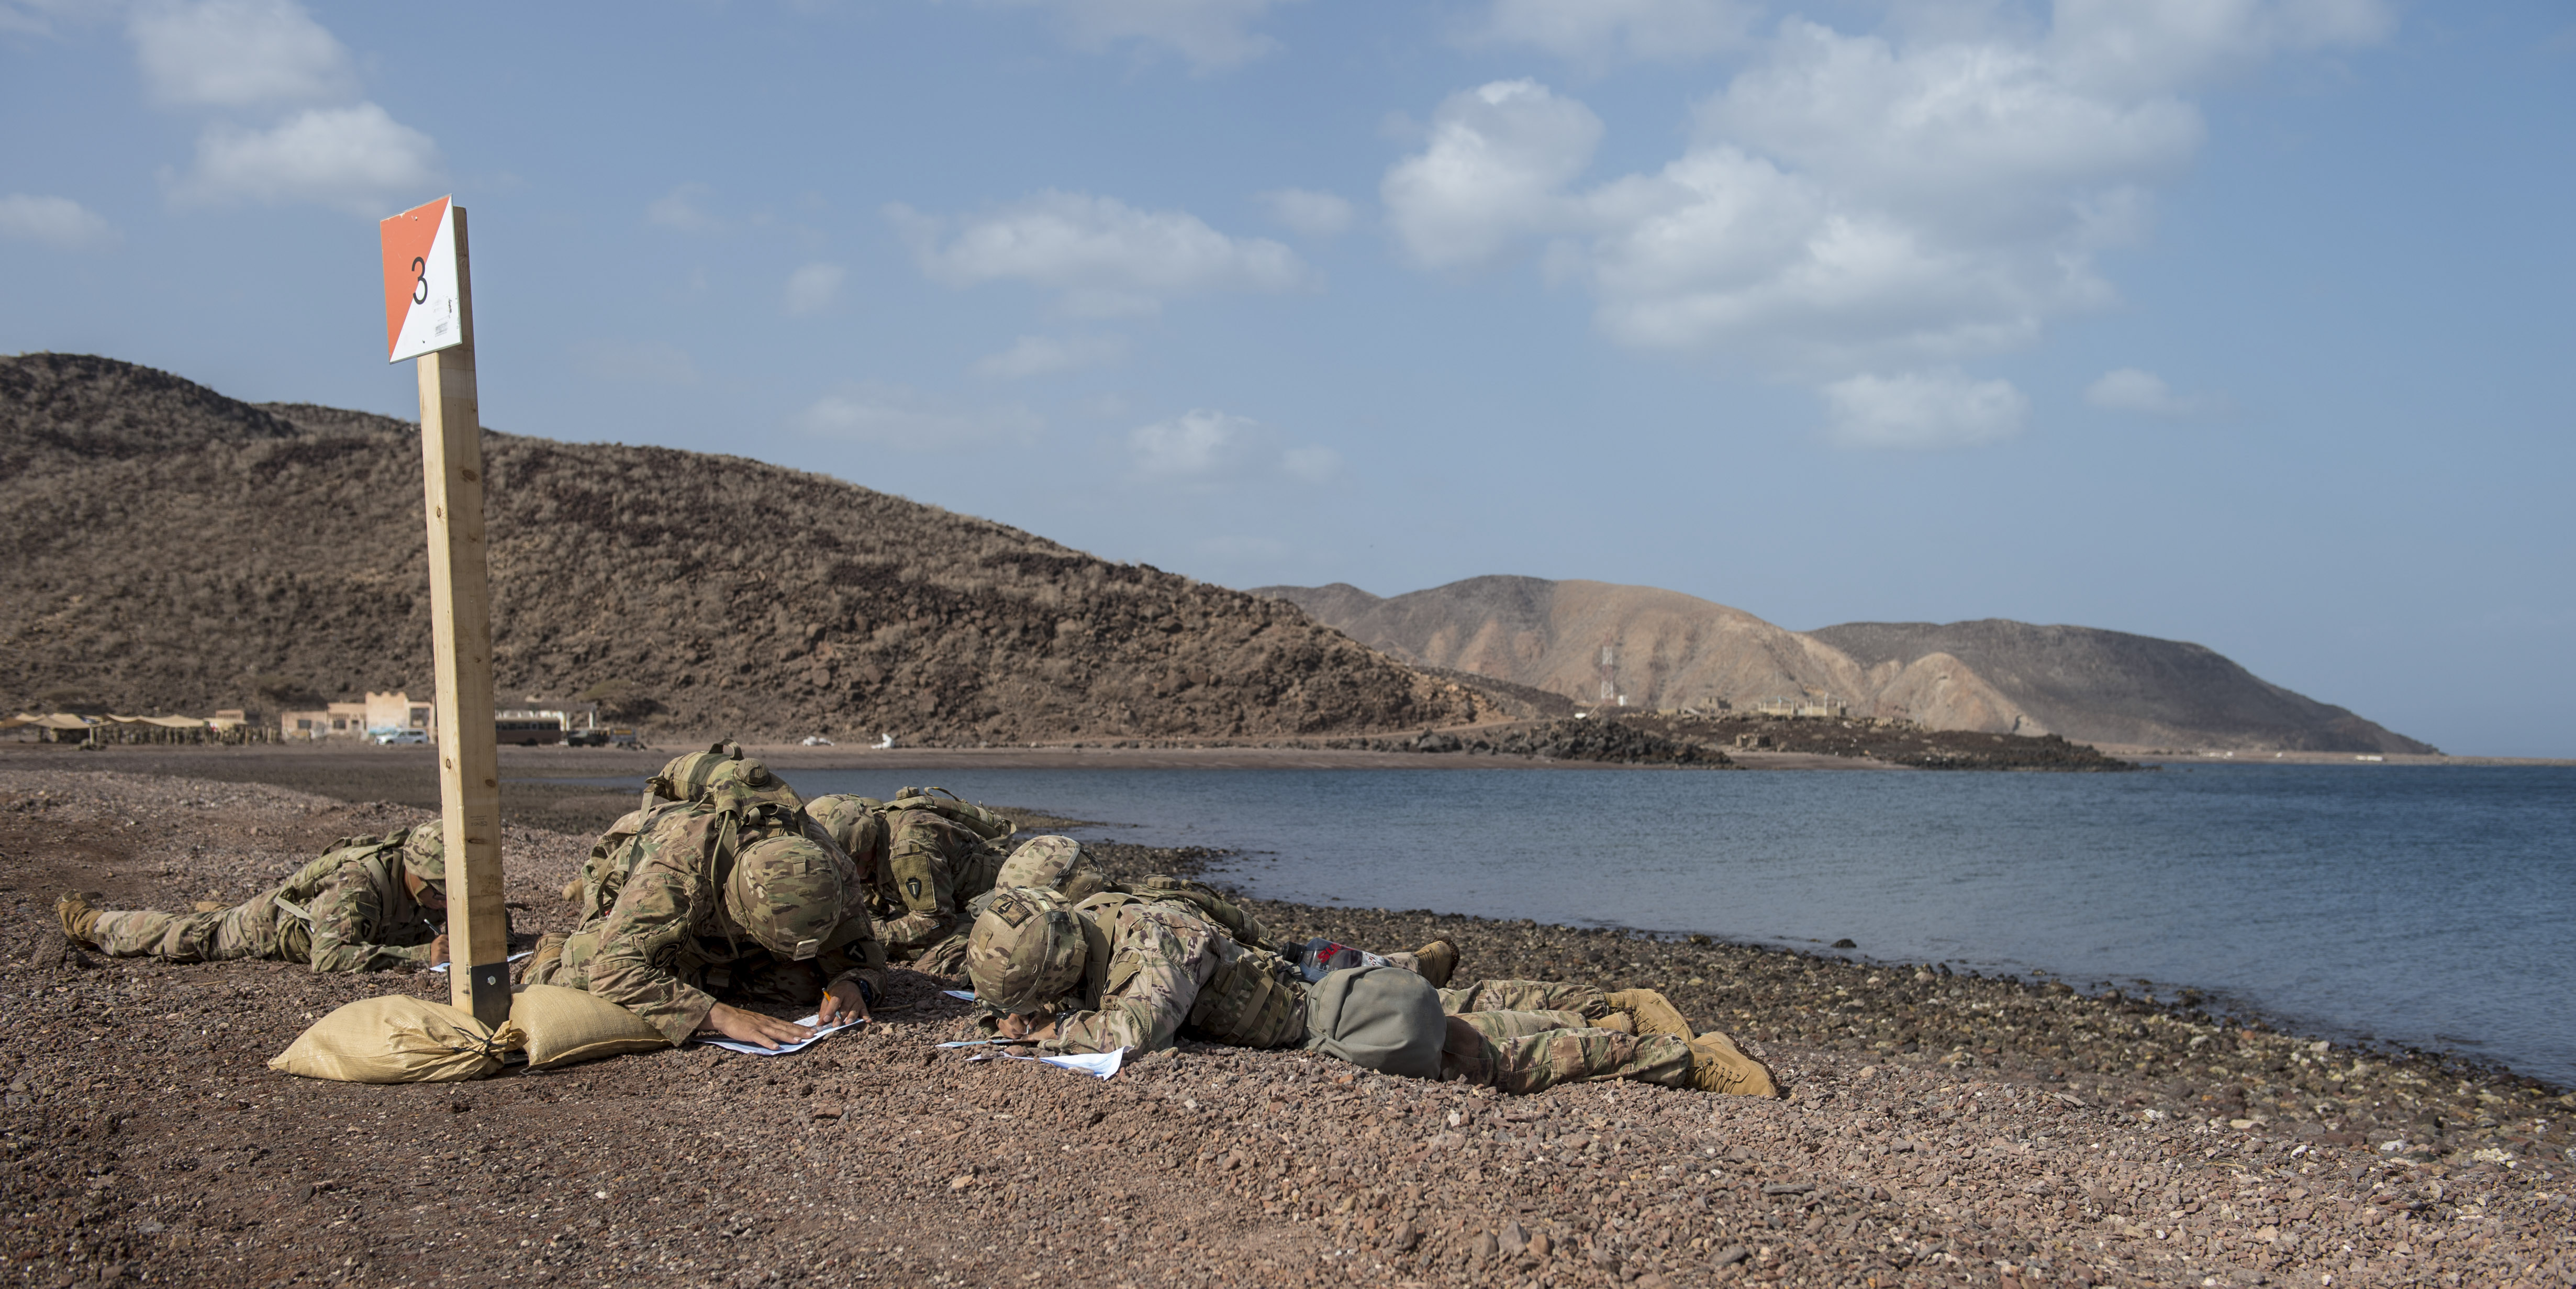 U.S. Army Soldiers assigned to Combined Joint Task Force - Horn of Africa plot grid points during land navigation training in preparation for an Expert Infantryman Badge evaluation at Arta Range, Djibouti, Jan. 25, 2018. After two weeks of training and five days of testing, 50 Soldiers completed the process to earn the coveted special skills badge that requires Soldiers to perform an Army Physical Fitness Test, day and night land navigation, a 12-mile forced march, and 30 individual tasks covering weapons, medical, and security patrol skills. (U.S. Air Force photo by Staff Sgt. Timothy Moore)